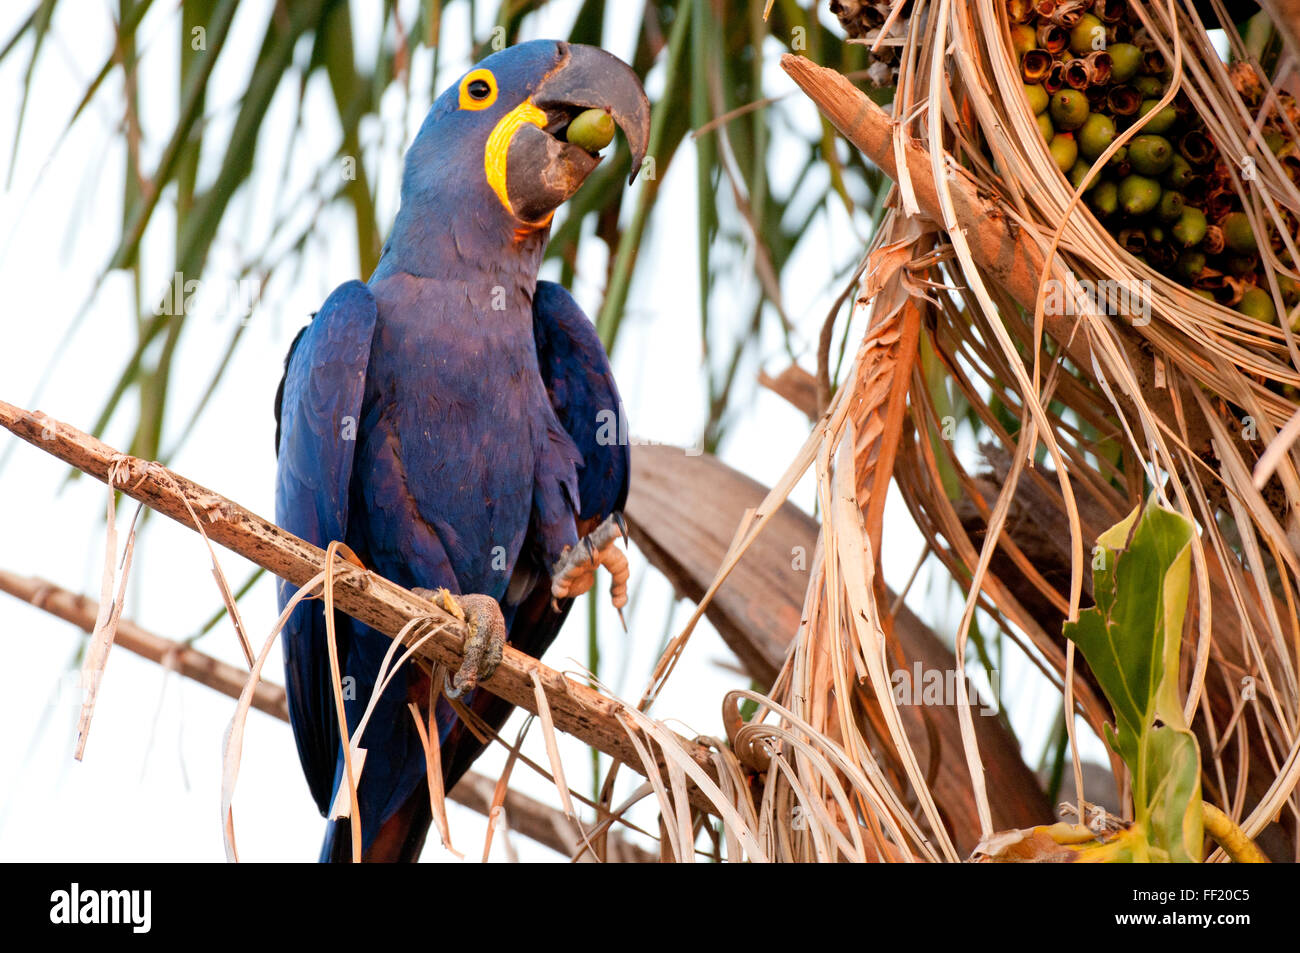 Hyacinth macaw (Anodorhynchus hyacinthinus) in palm tree eating a palm nut in the Brazilian Pantanal - Stock Image